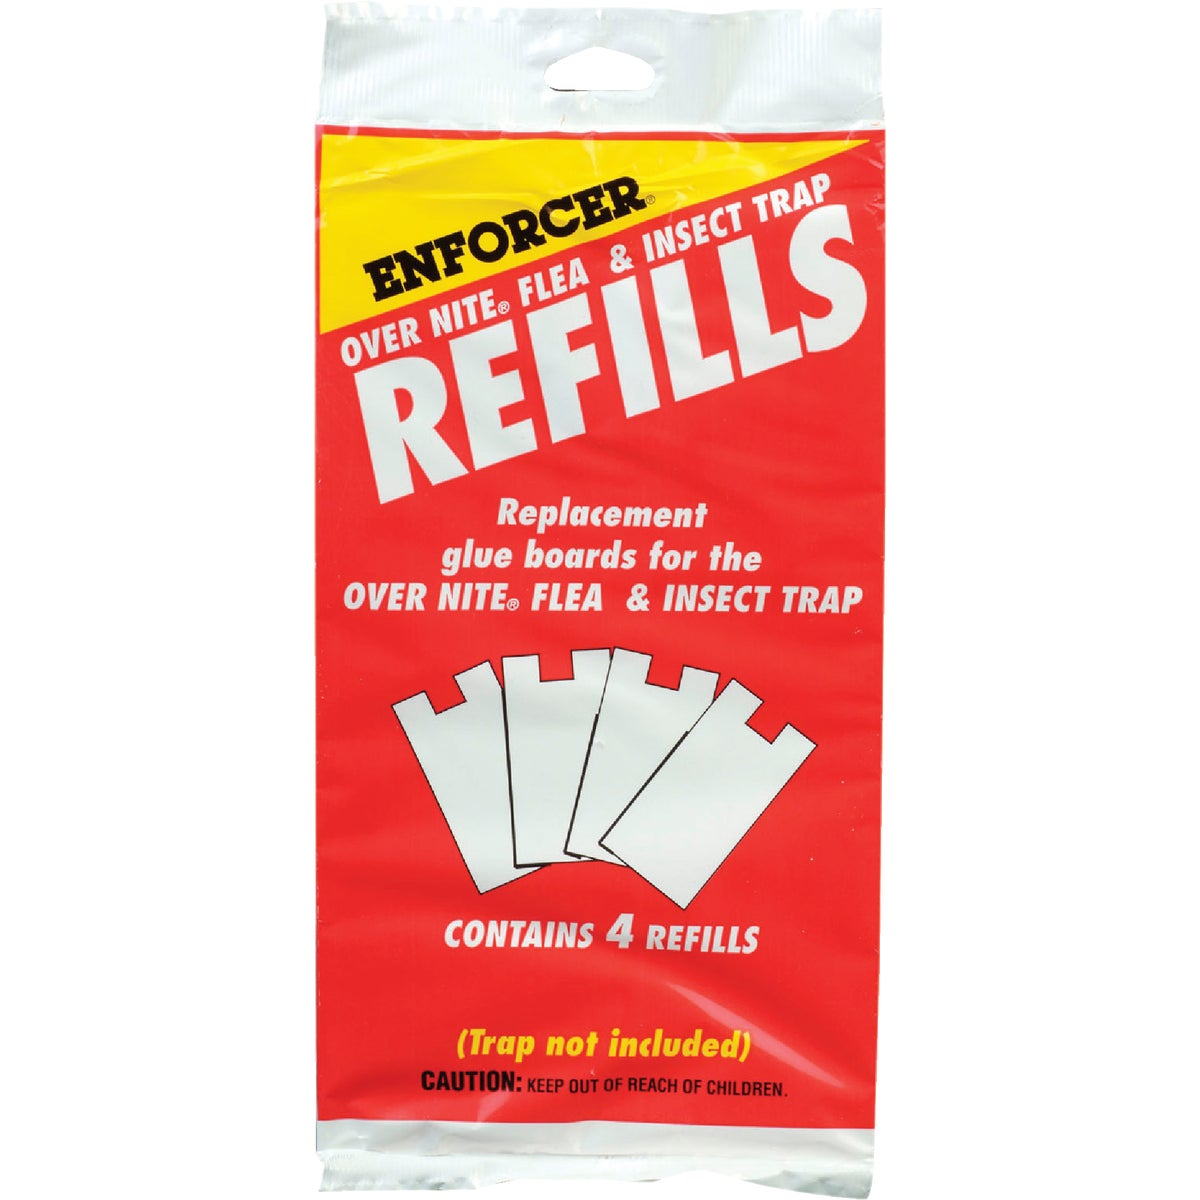 4PACK FLEA TRAP REFILLS - ONFTR by Zep Enforcer Inc